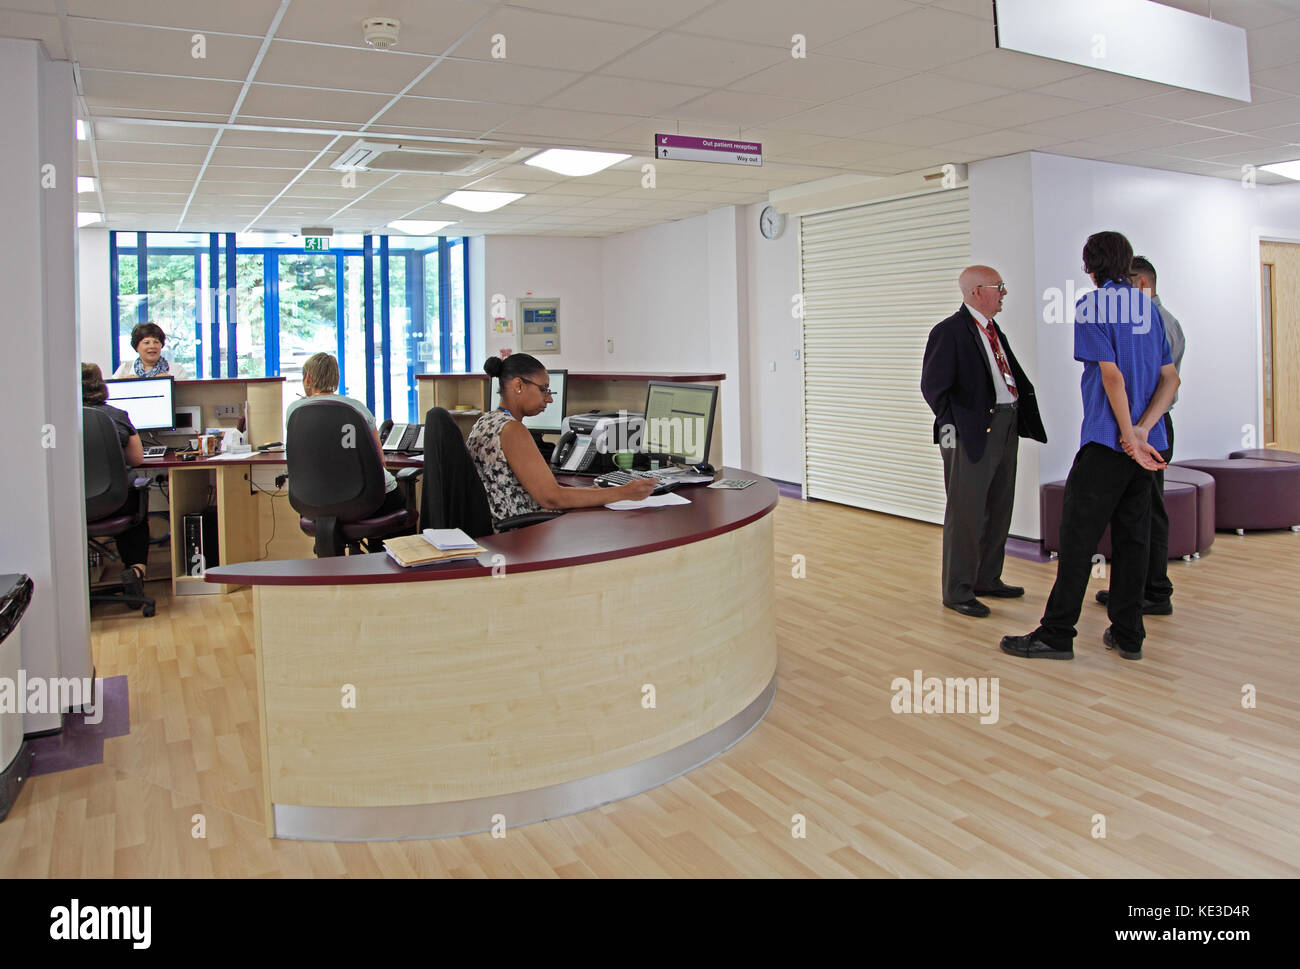 Entrance lobby at the newly refurbished Purley War Memorial Hospital in South London, UK - Stock Image